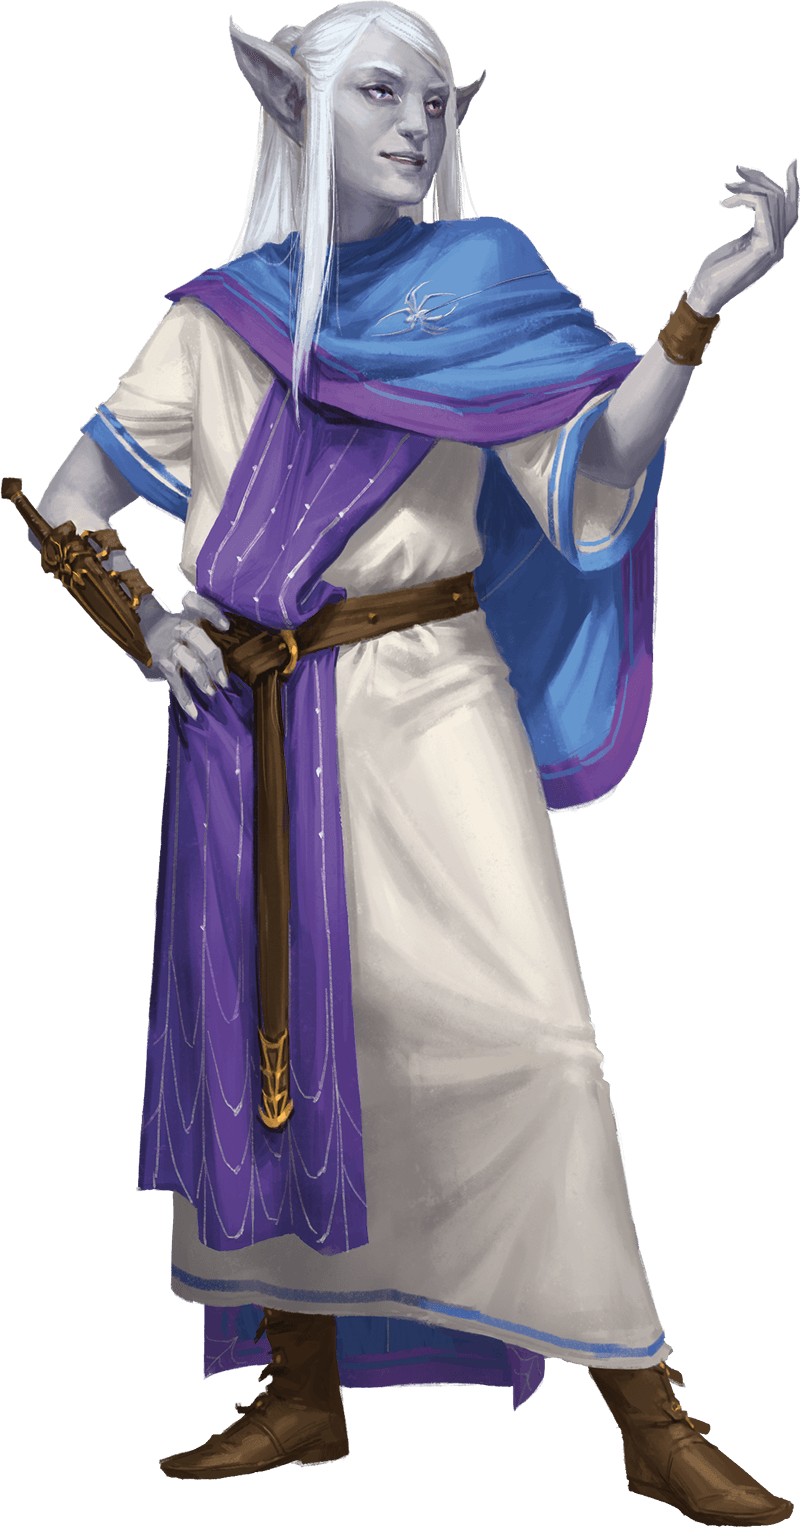 5E D&D College of Eloquence bard Tasha's Cauldron of Everything